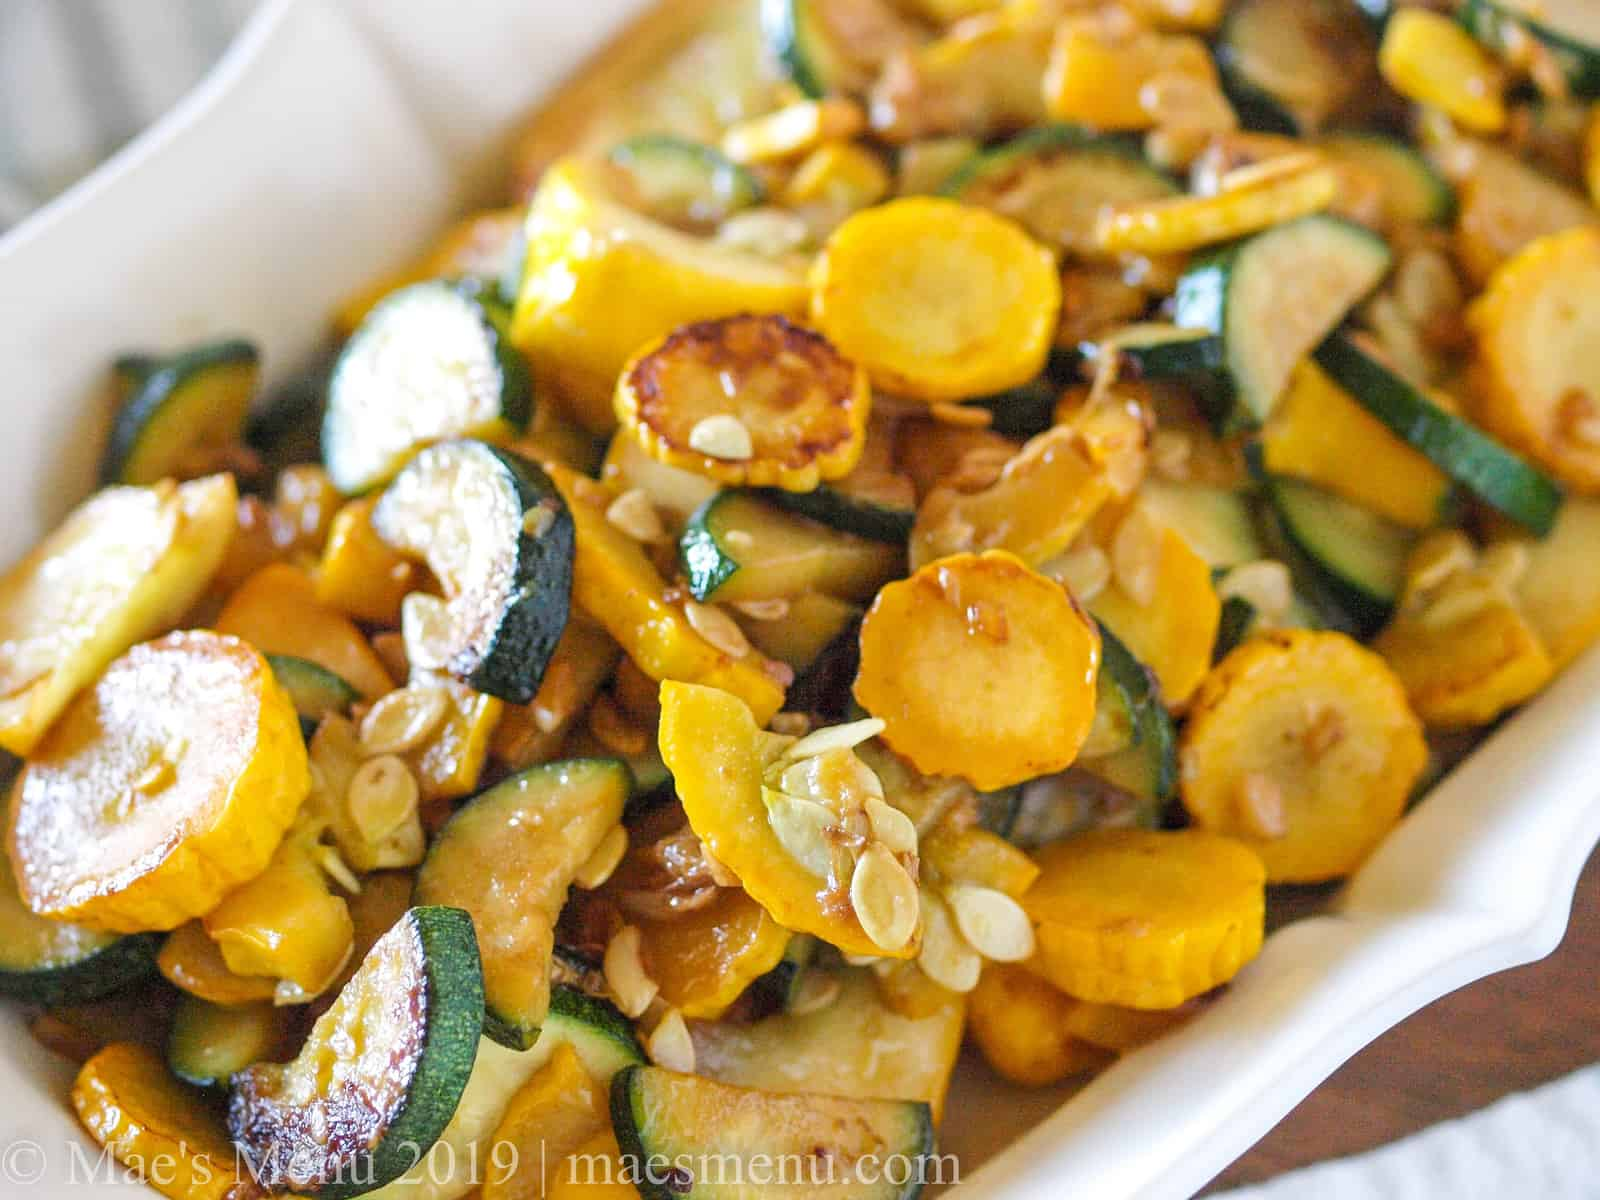 Large bowl of sauteed zucchini and yellow squash.